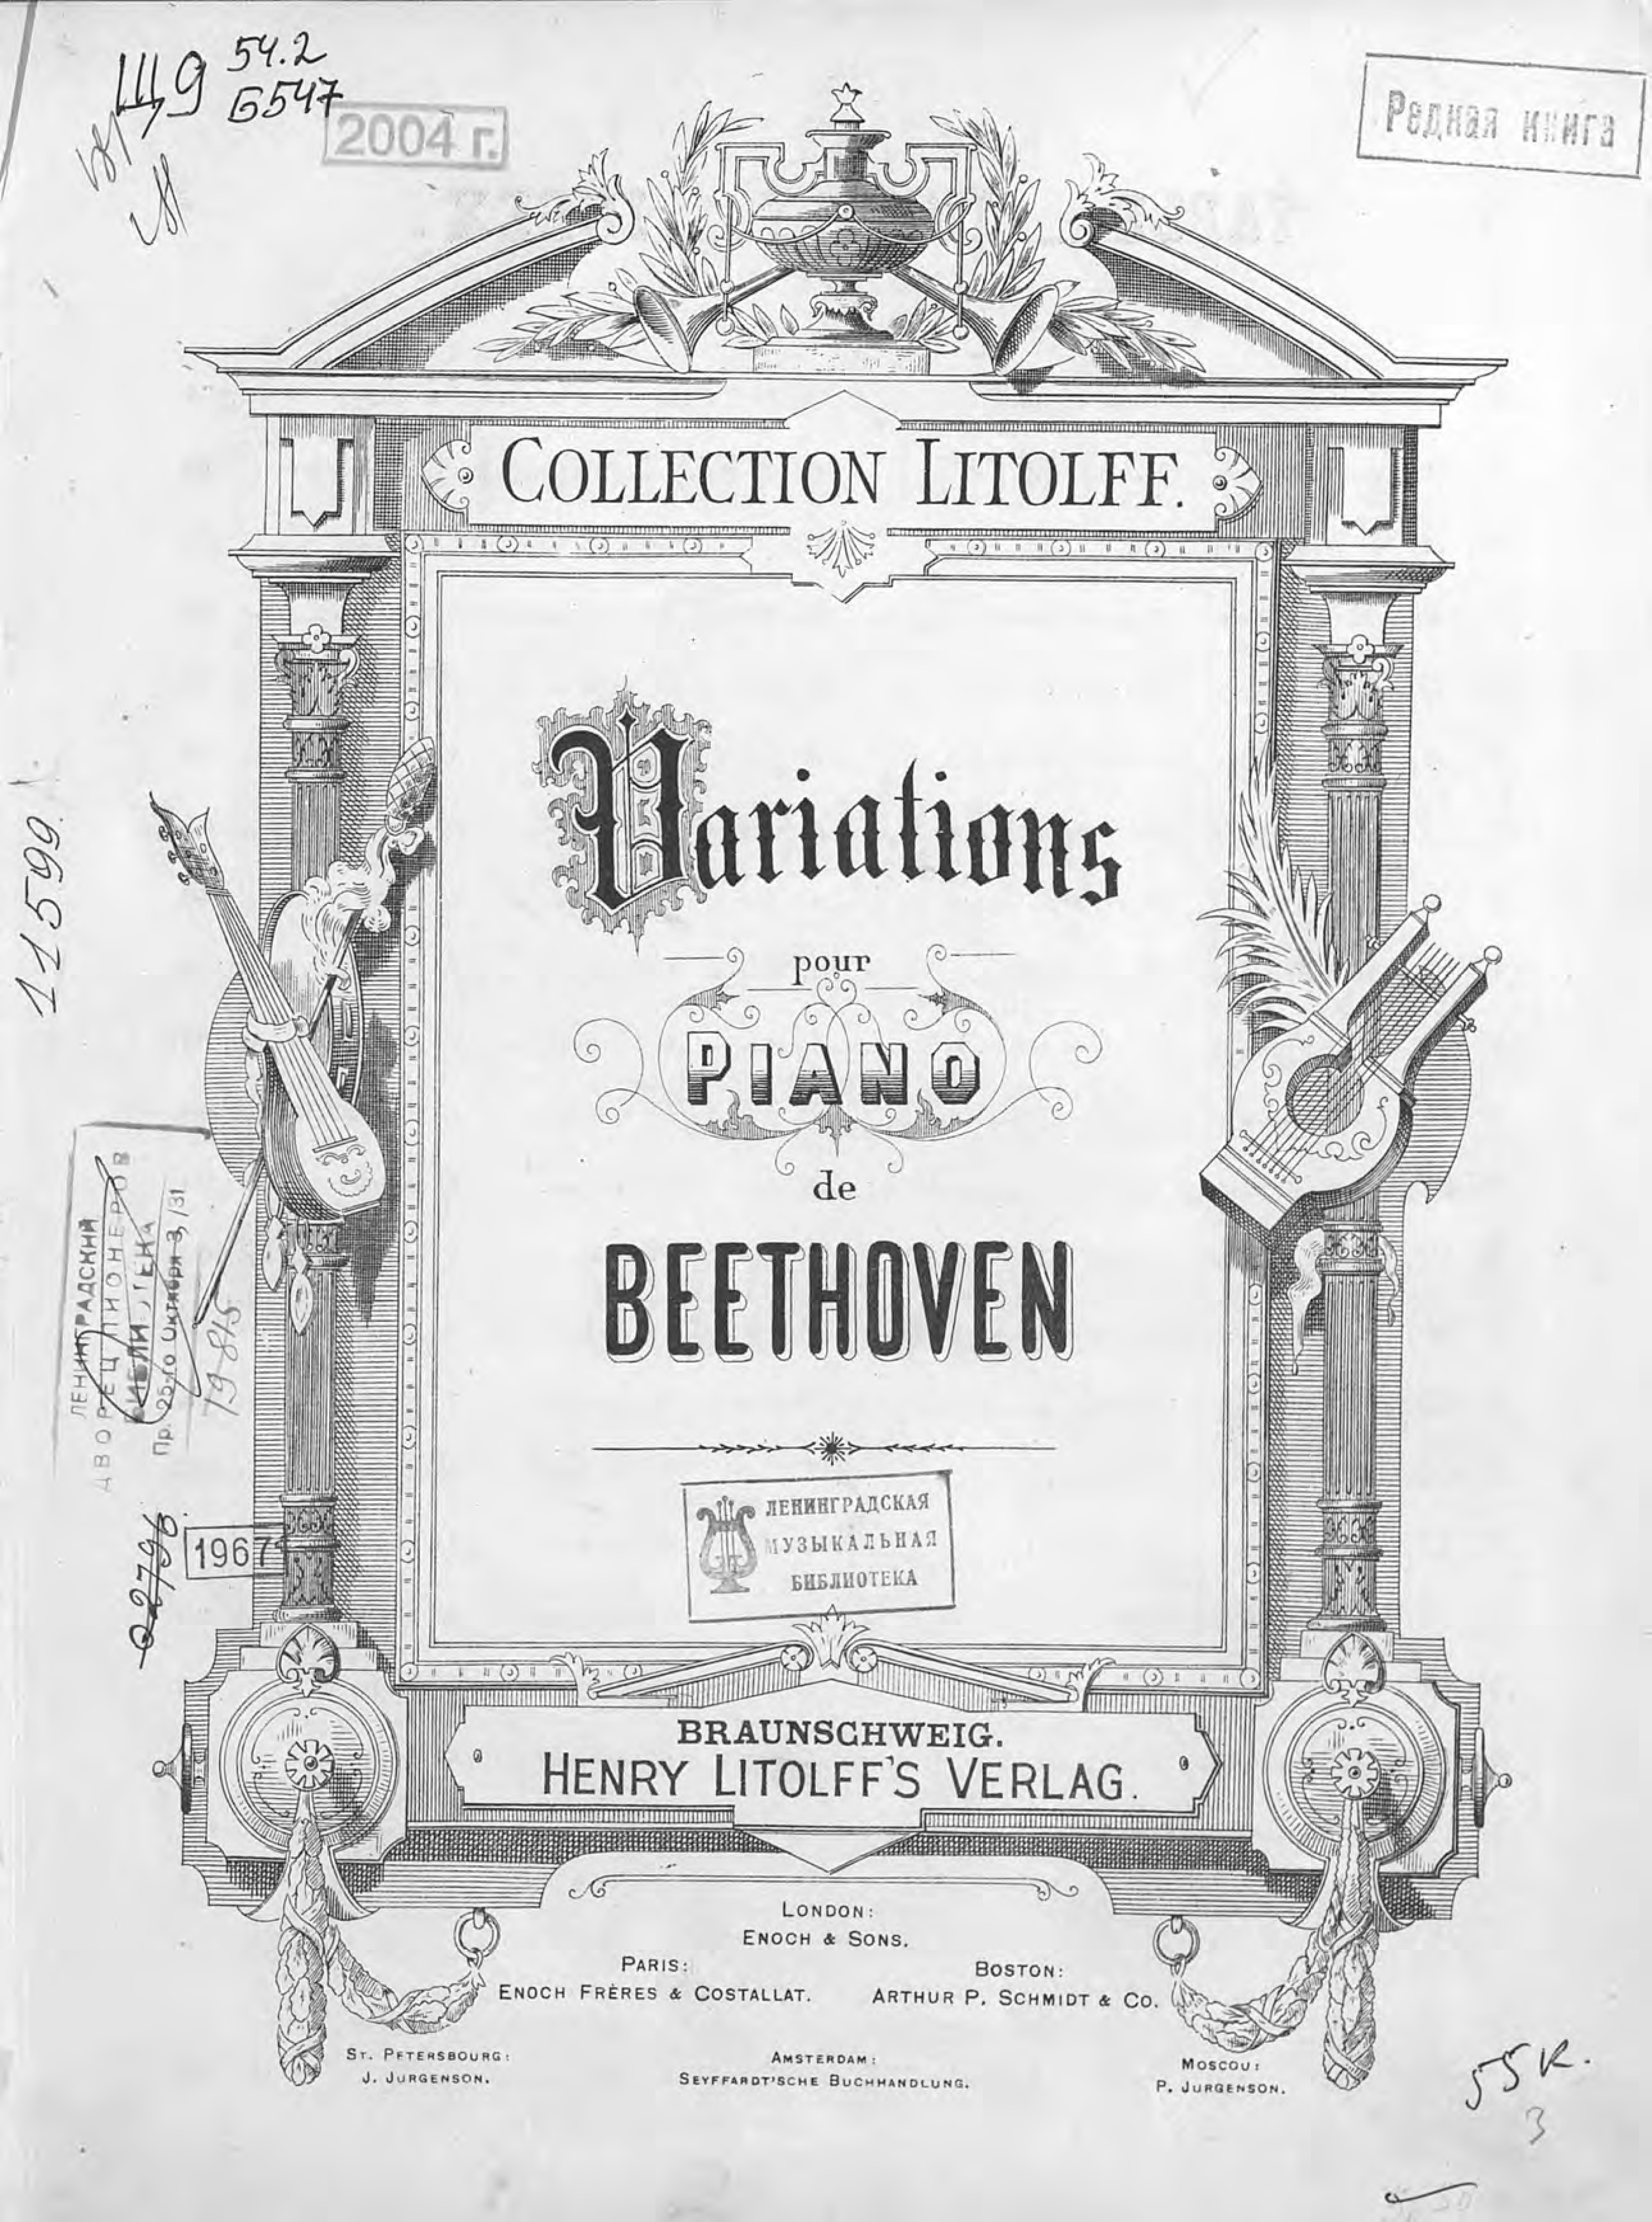 Людвиг ван Бетховен Variations pour piano de Beethoven людвиг ван бетховен никколо паганини грань эпох